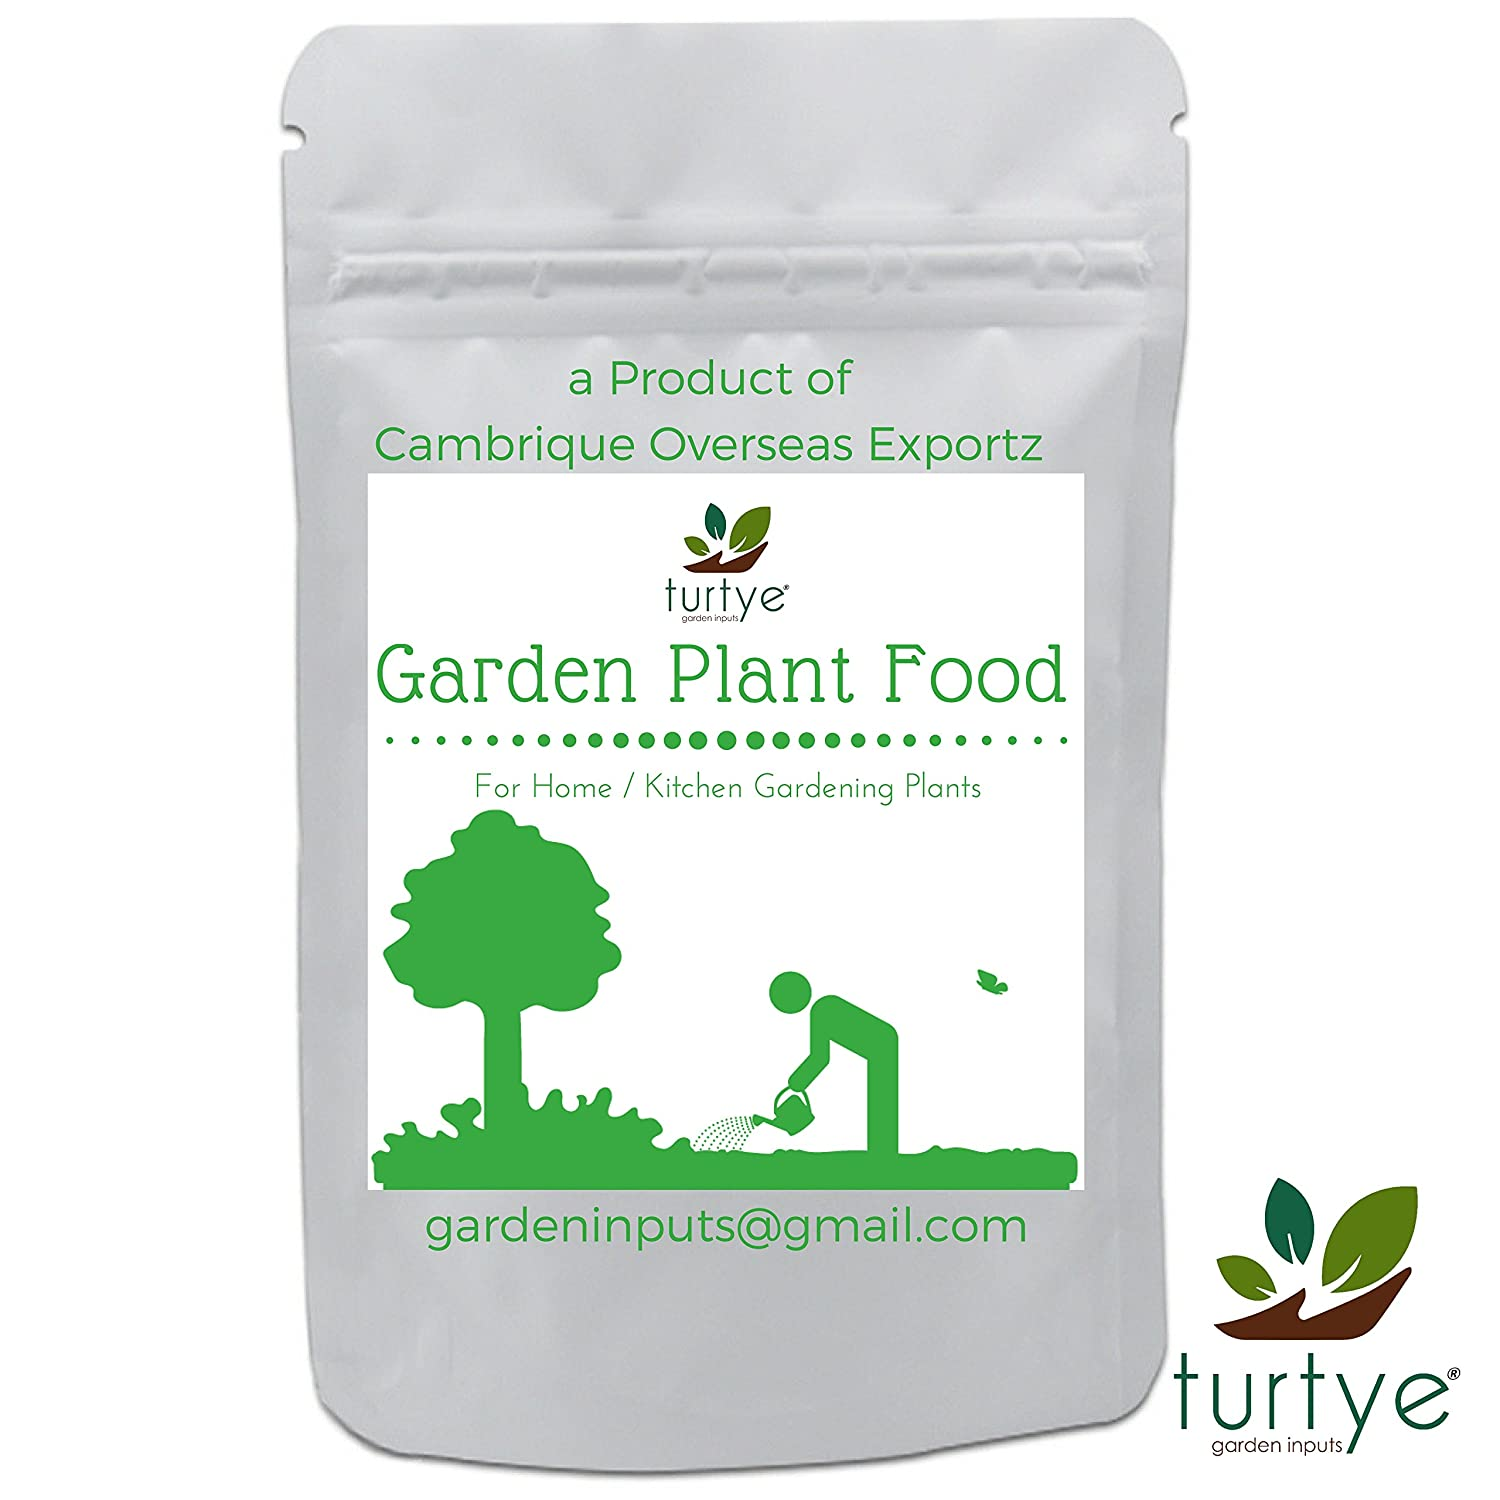 Turtye® Garden Plant Food - 5 Kg's for Home/Kitchen Gardening Plants